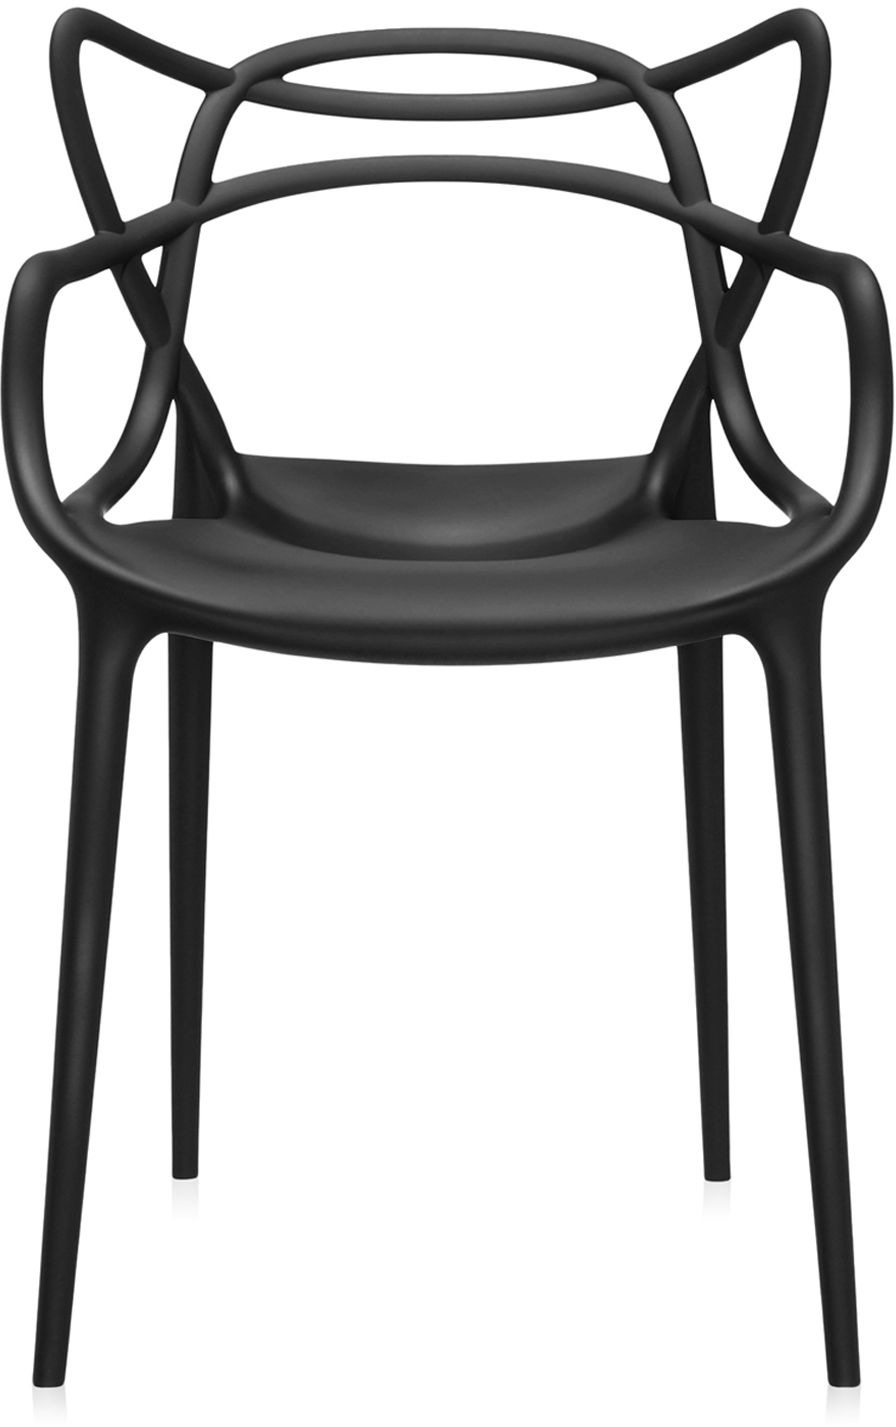 chair masters by kartell. Black Bedroom Furniture Sets. Home Design Ideas